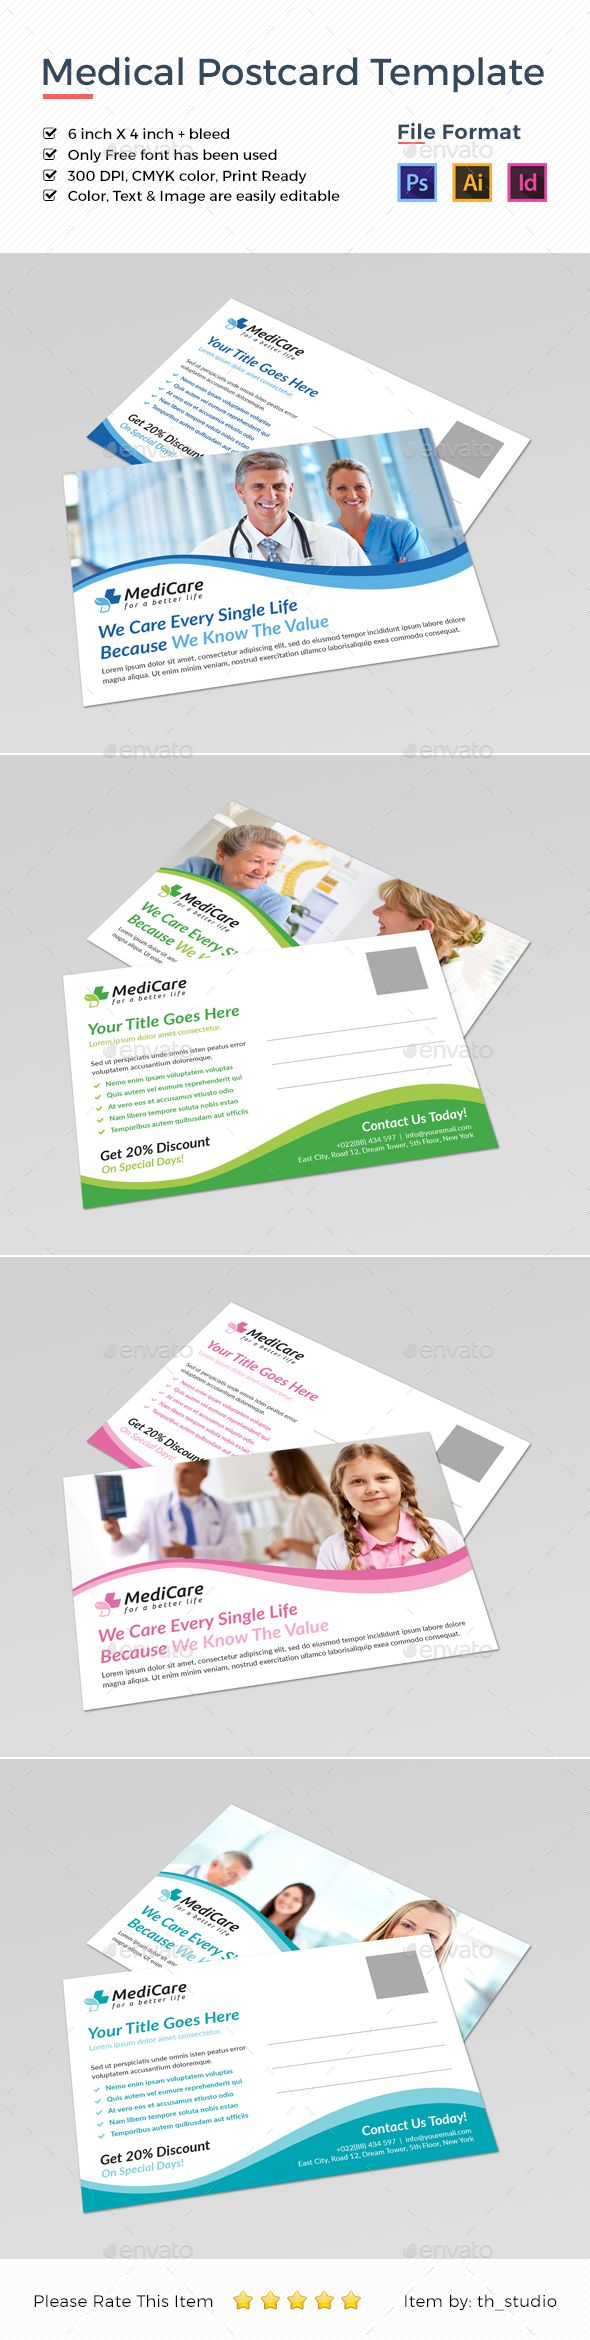 Medical Postcard Template | Pinterest | Seguro de vida y Vida